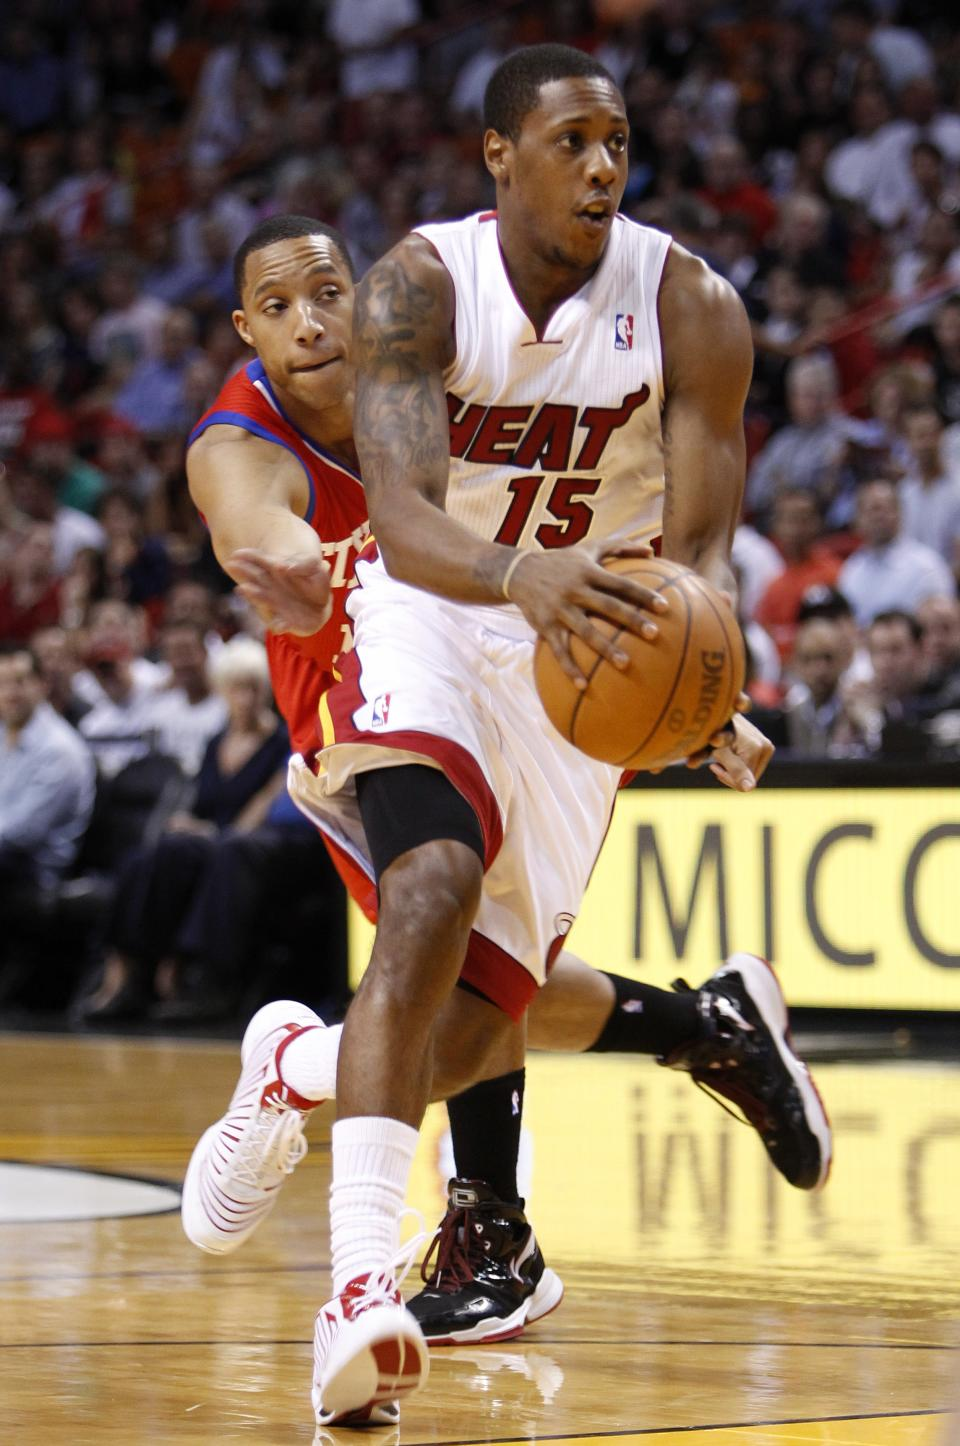 Miami Heat guard Mario Chalmers (15) drives to the basket trailed by Philadelphia 76ers guard Evan Turner during the first half of an NBA basketball game, Tuesday, April 3, 2012 in Miami. (AP Photo/Wilfredo Lee)